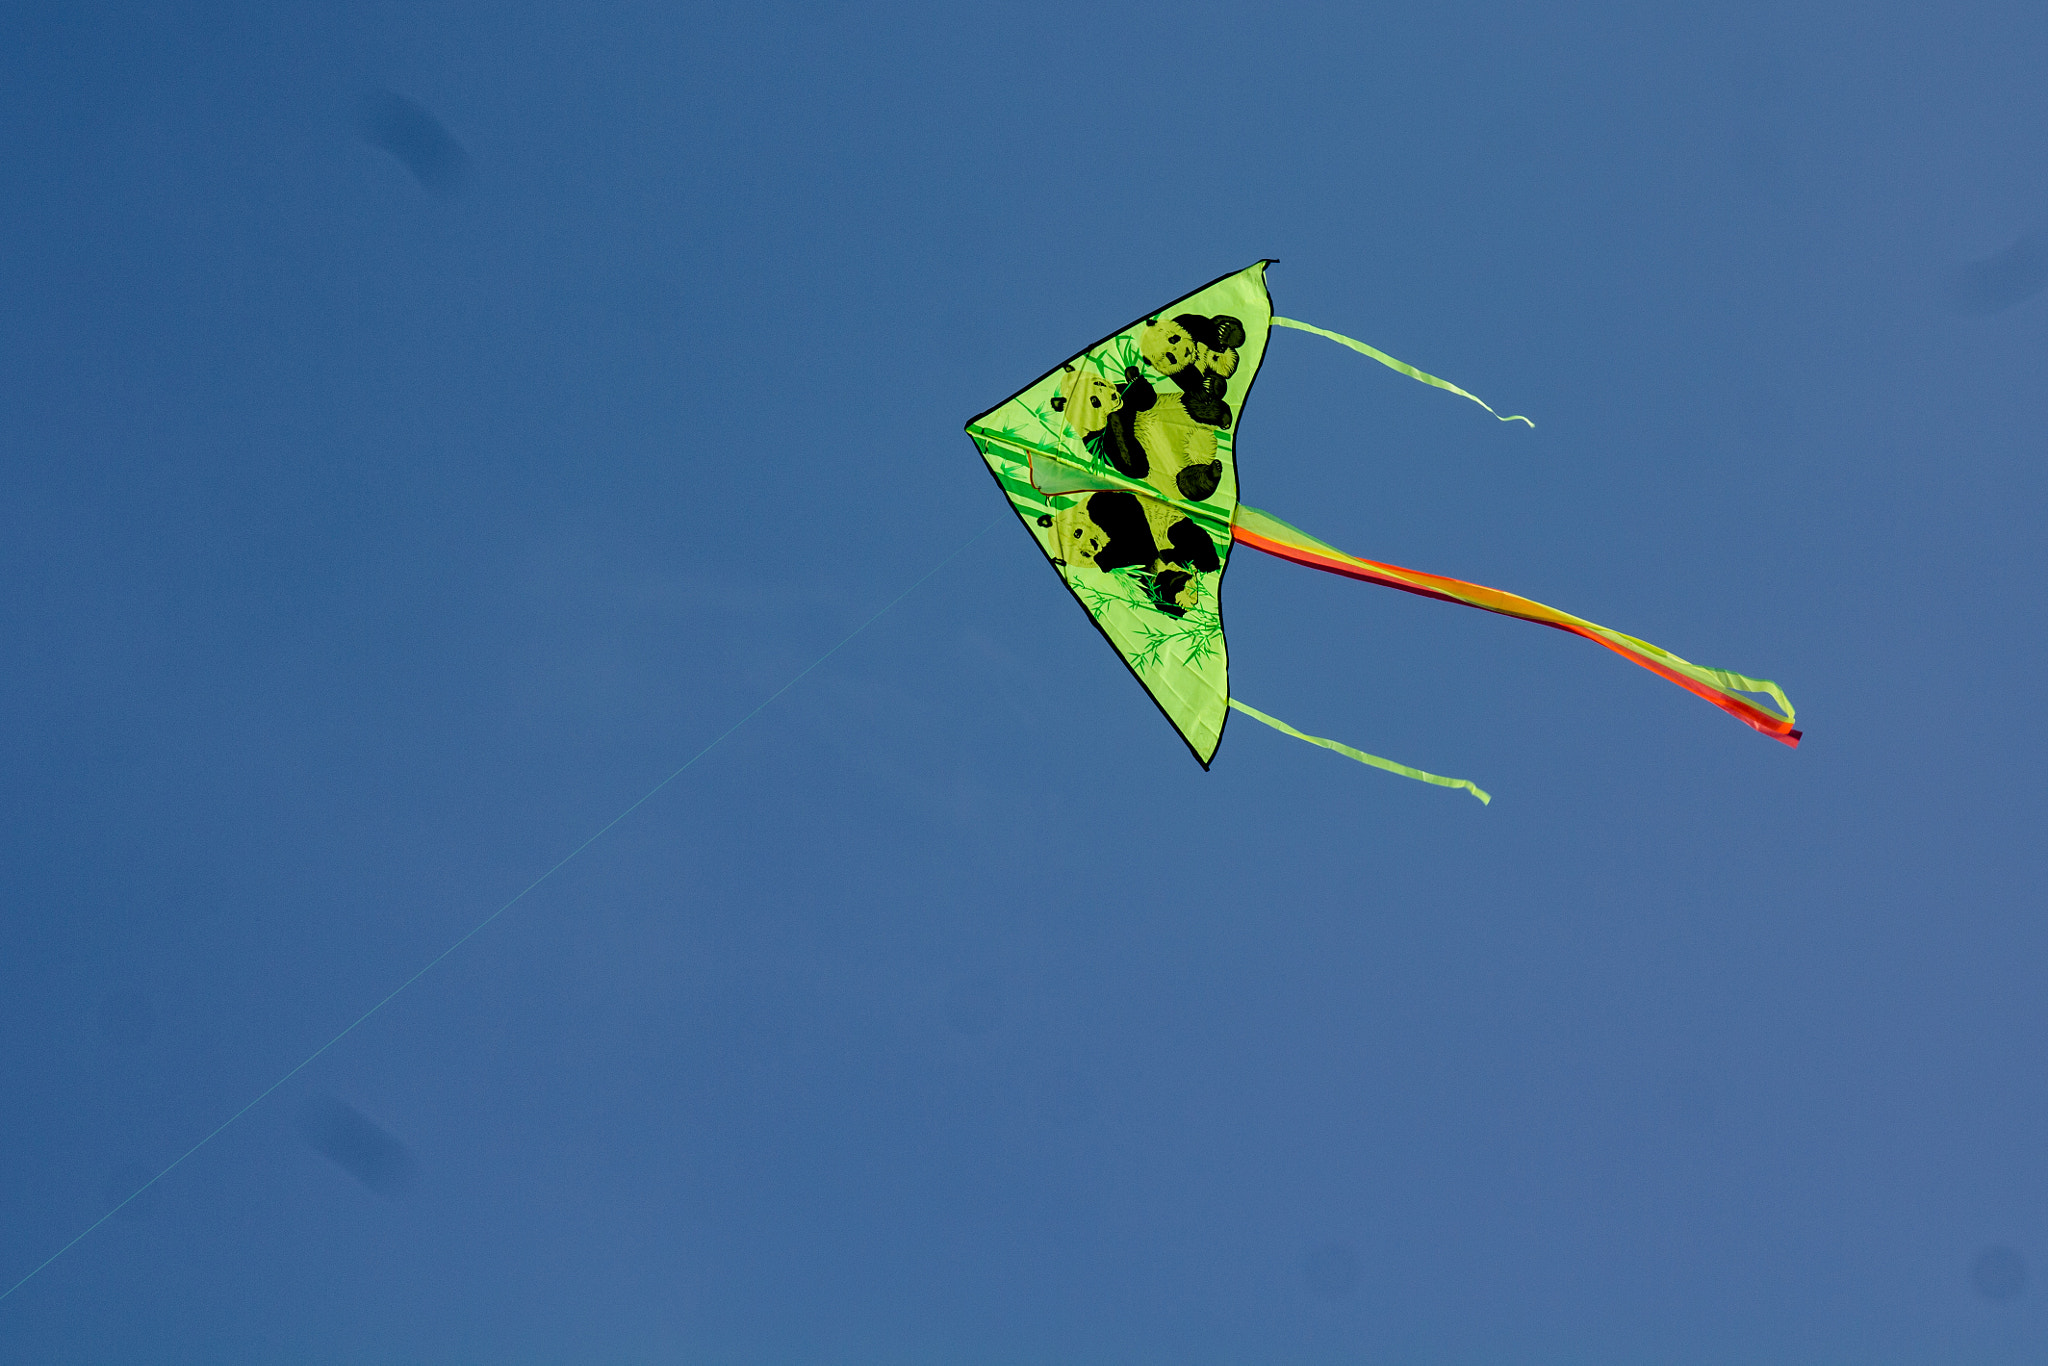 Photograph King Kite by Subhajit Paul on 500px